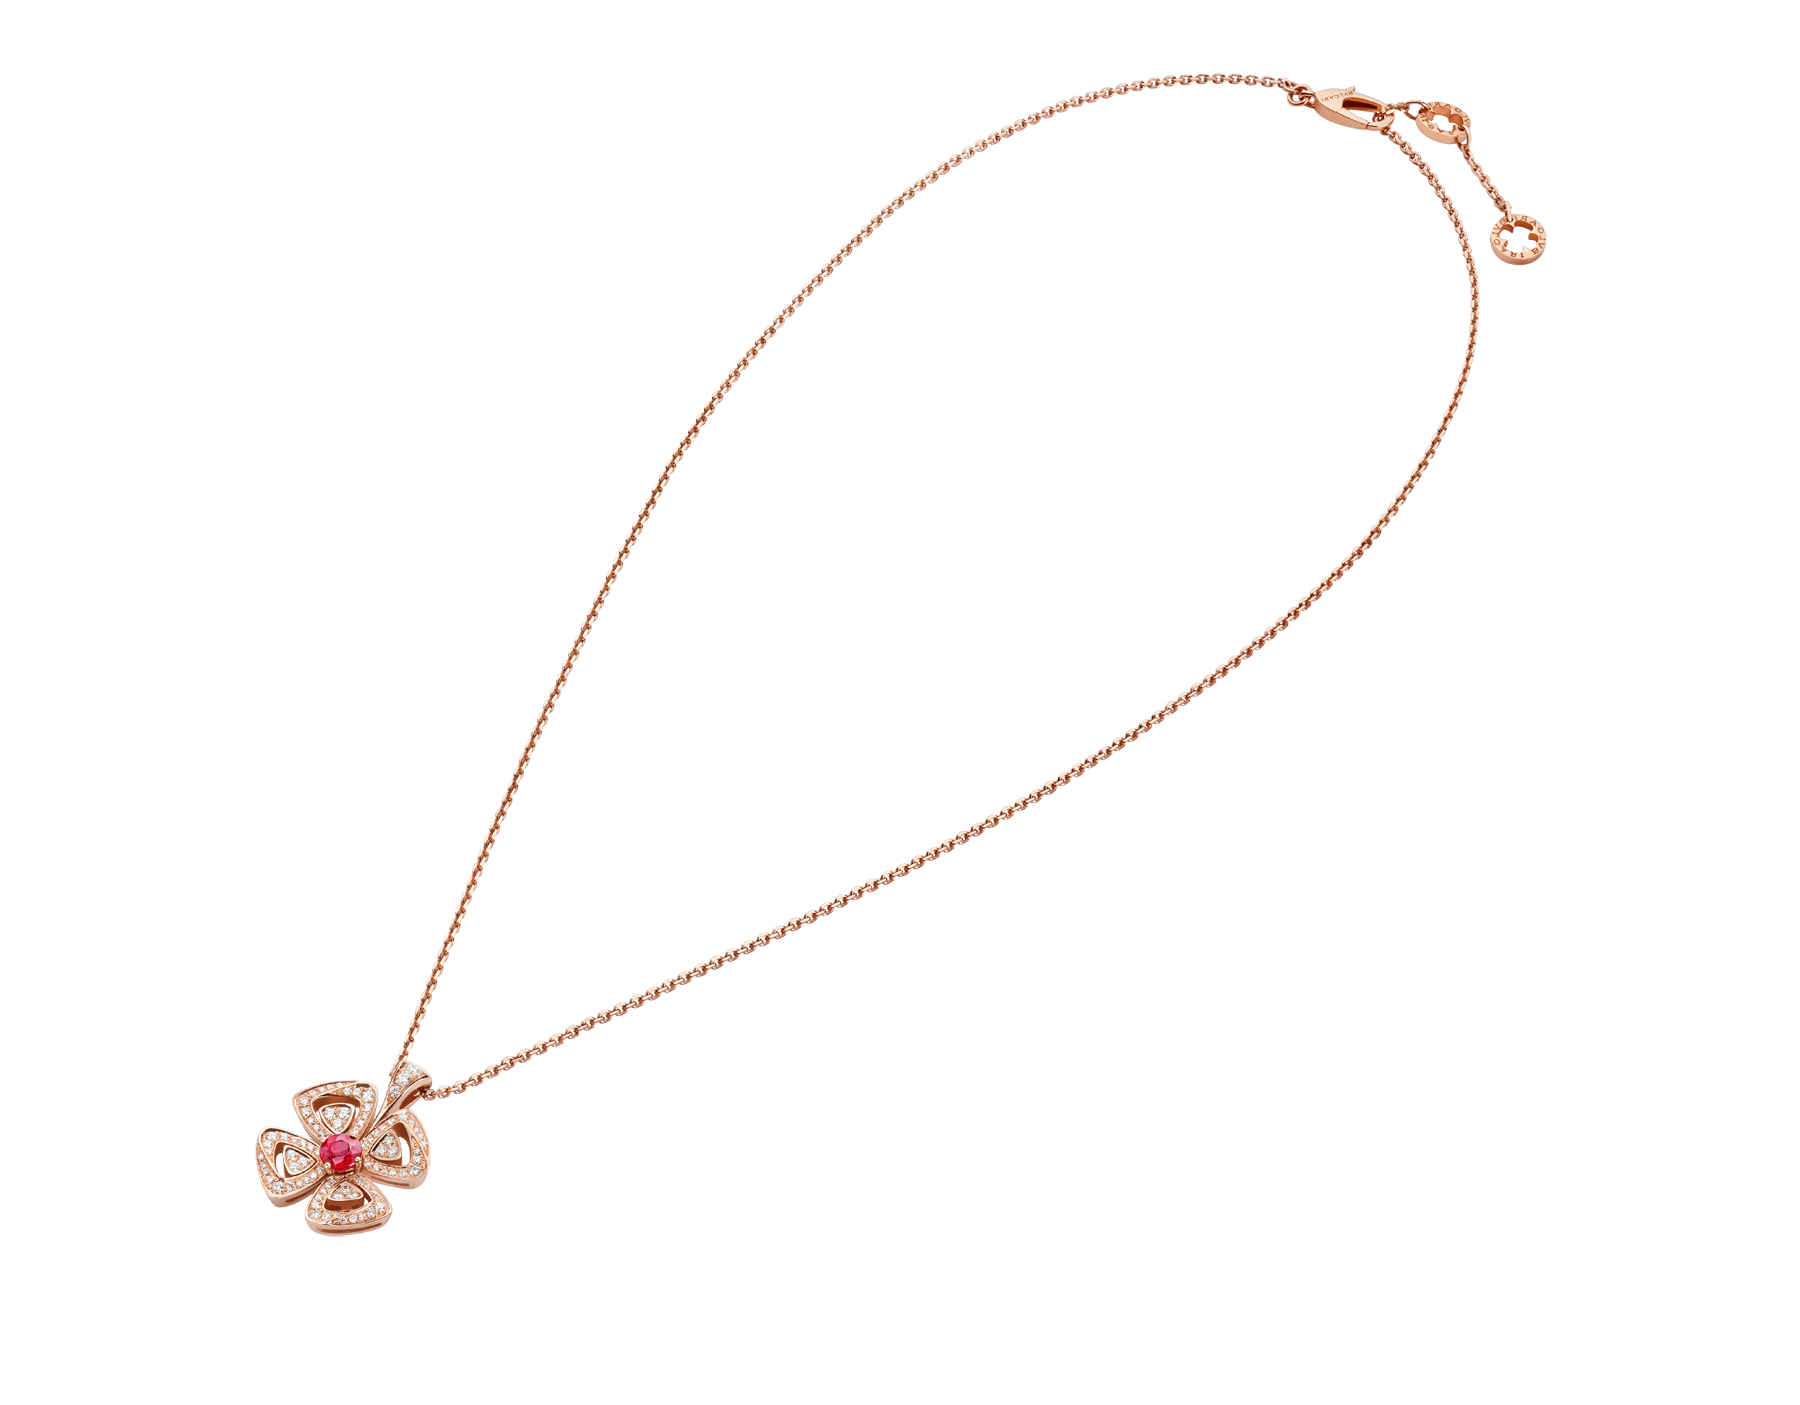 Fiorever 18 kt rose gold pendant necklace set with a central brilliant-cut ruby (0.35 ct) and pavé diamonds (0.31 ct) 358428 image 2